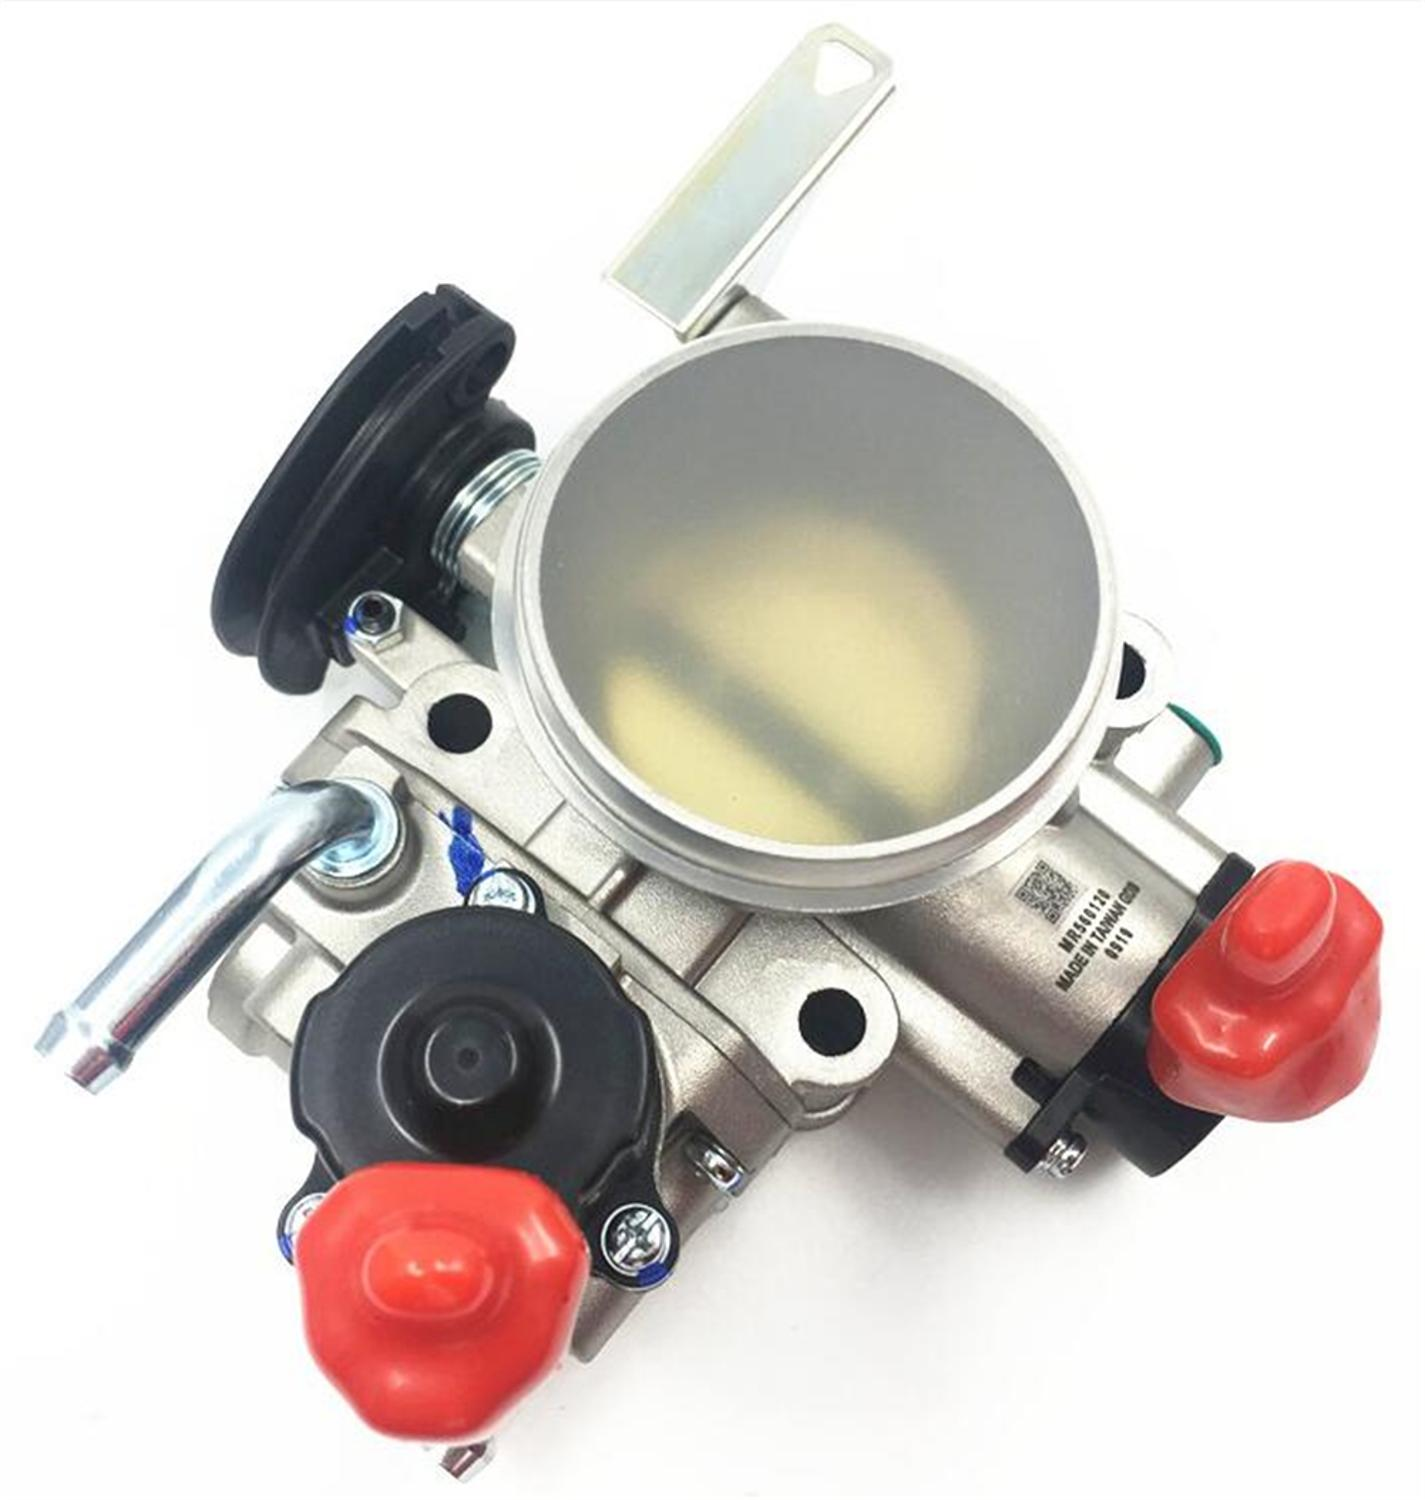 1pc Taiwan Idle Air Control Valves MR560120 MR560126 MN128888 Throttle Body Assembly Fit for <font><b>Mitsubishi</b></font> Southeast 4G18 Engine image